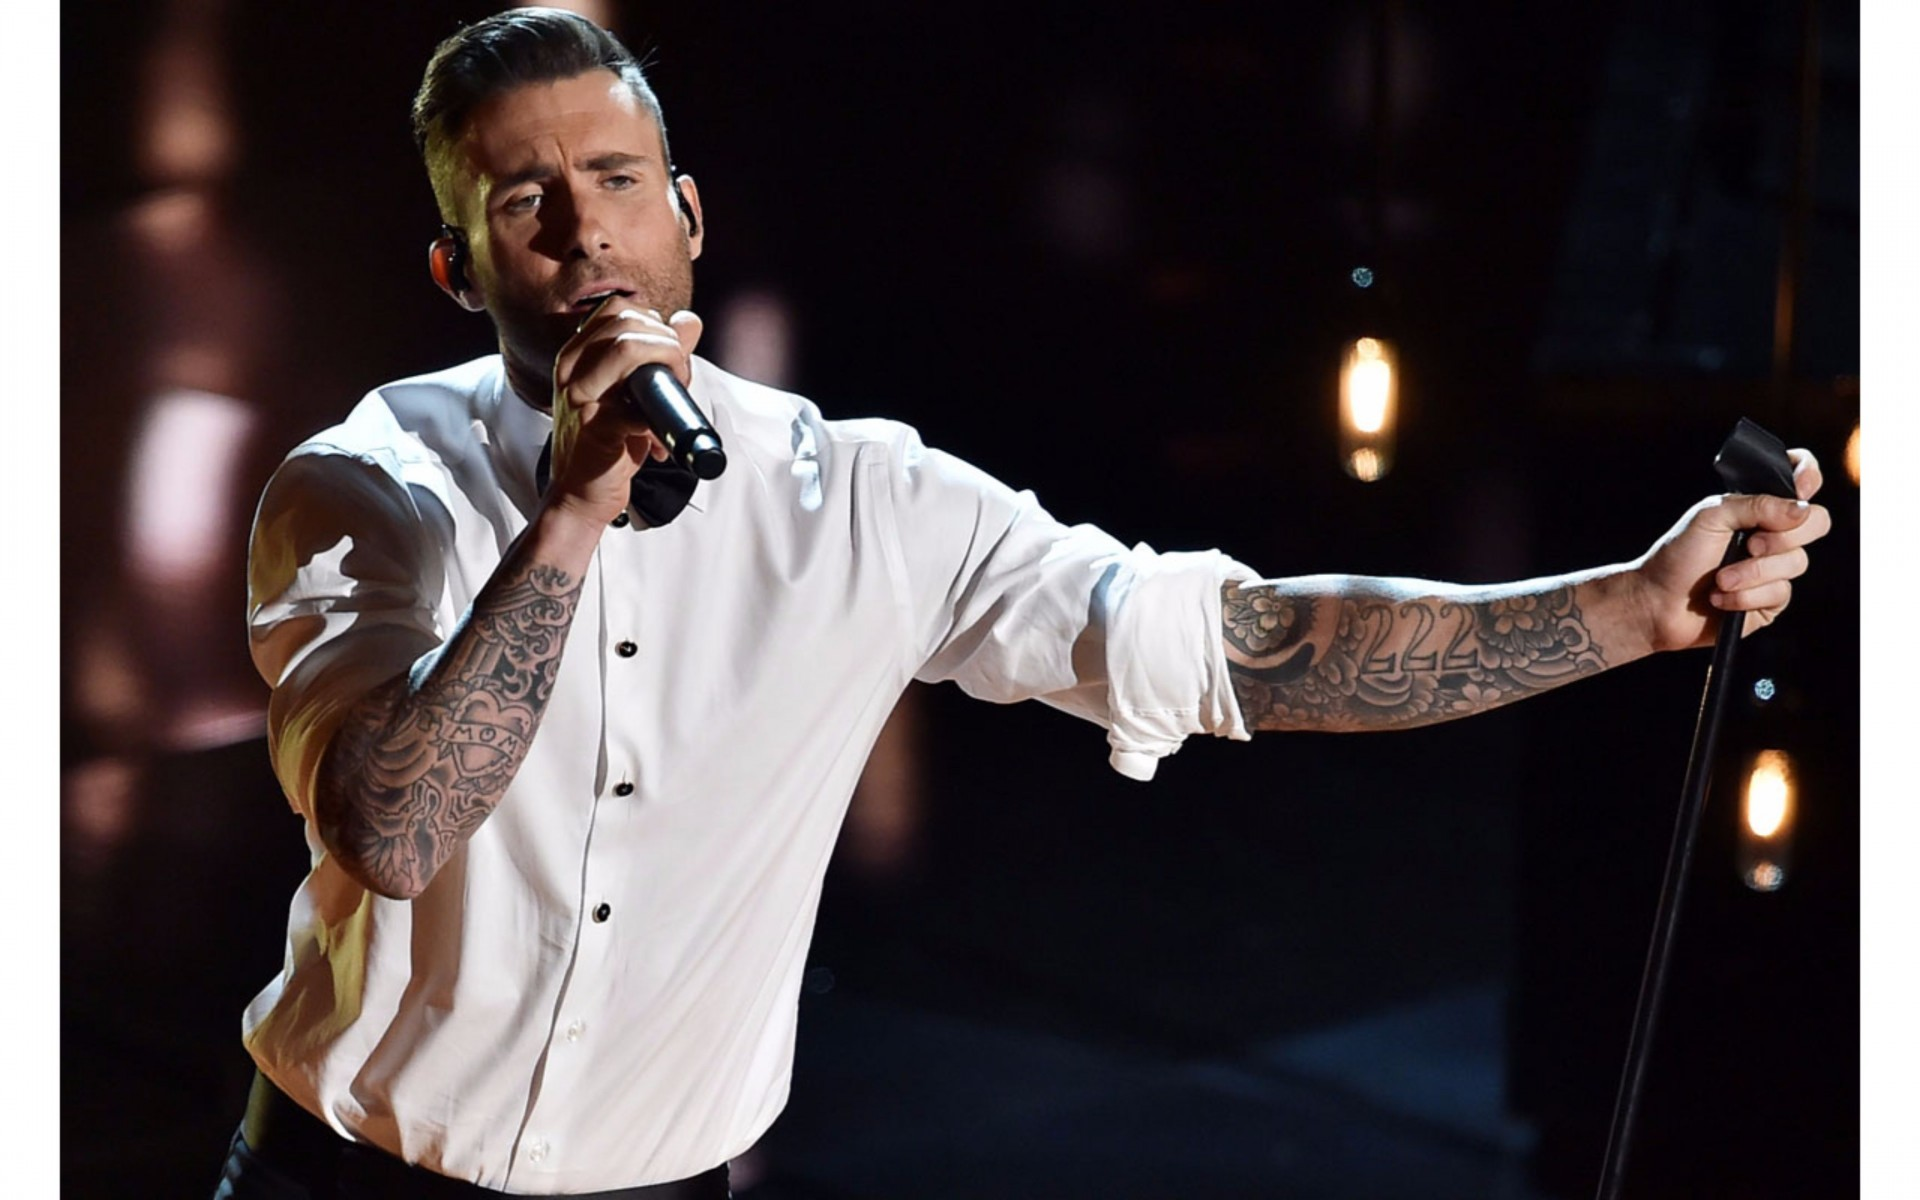 Adam Levine Stylish Stage Performance Latest Images collections 1920x1200